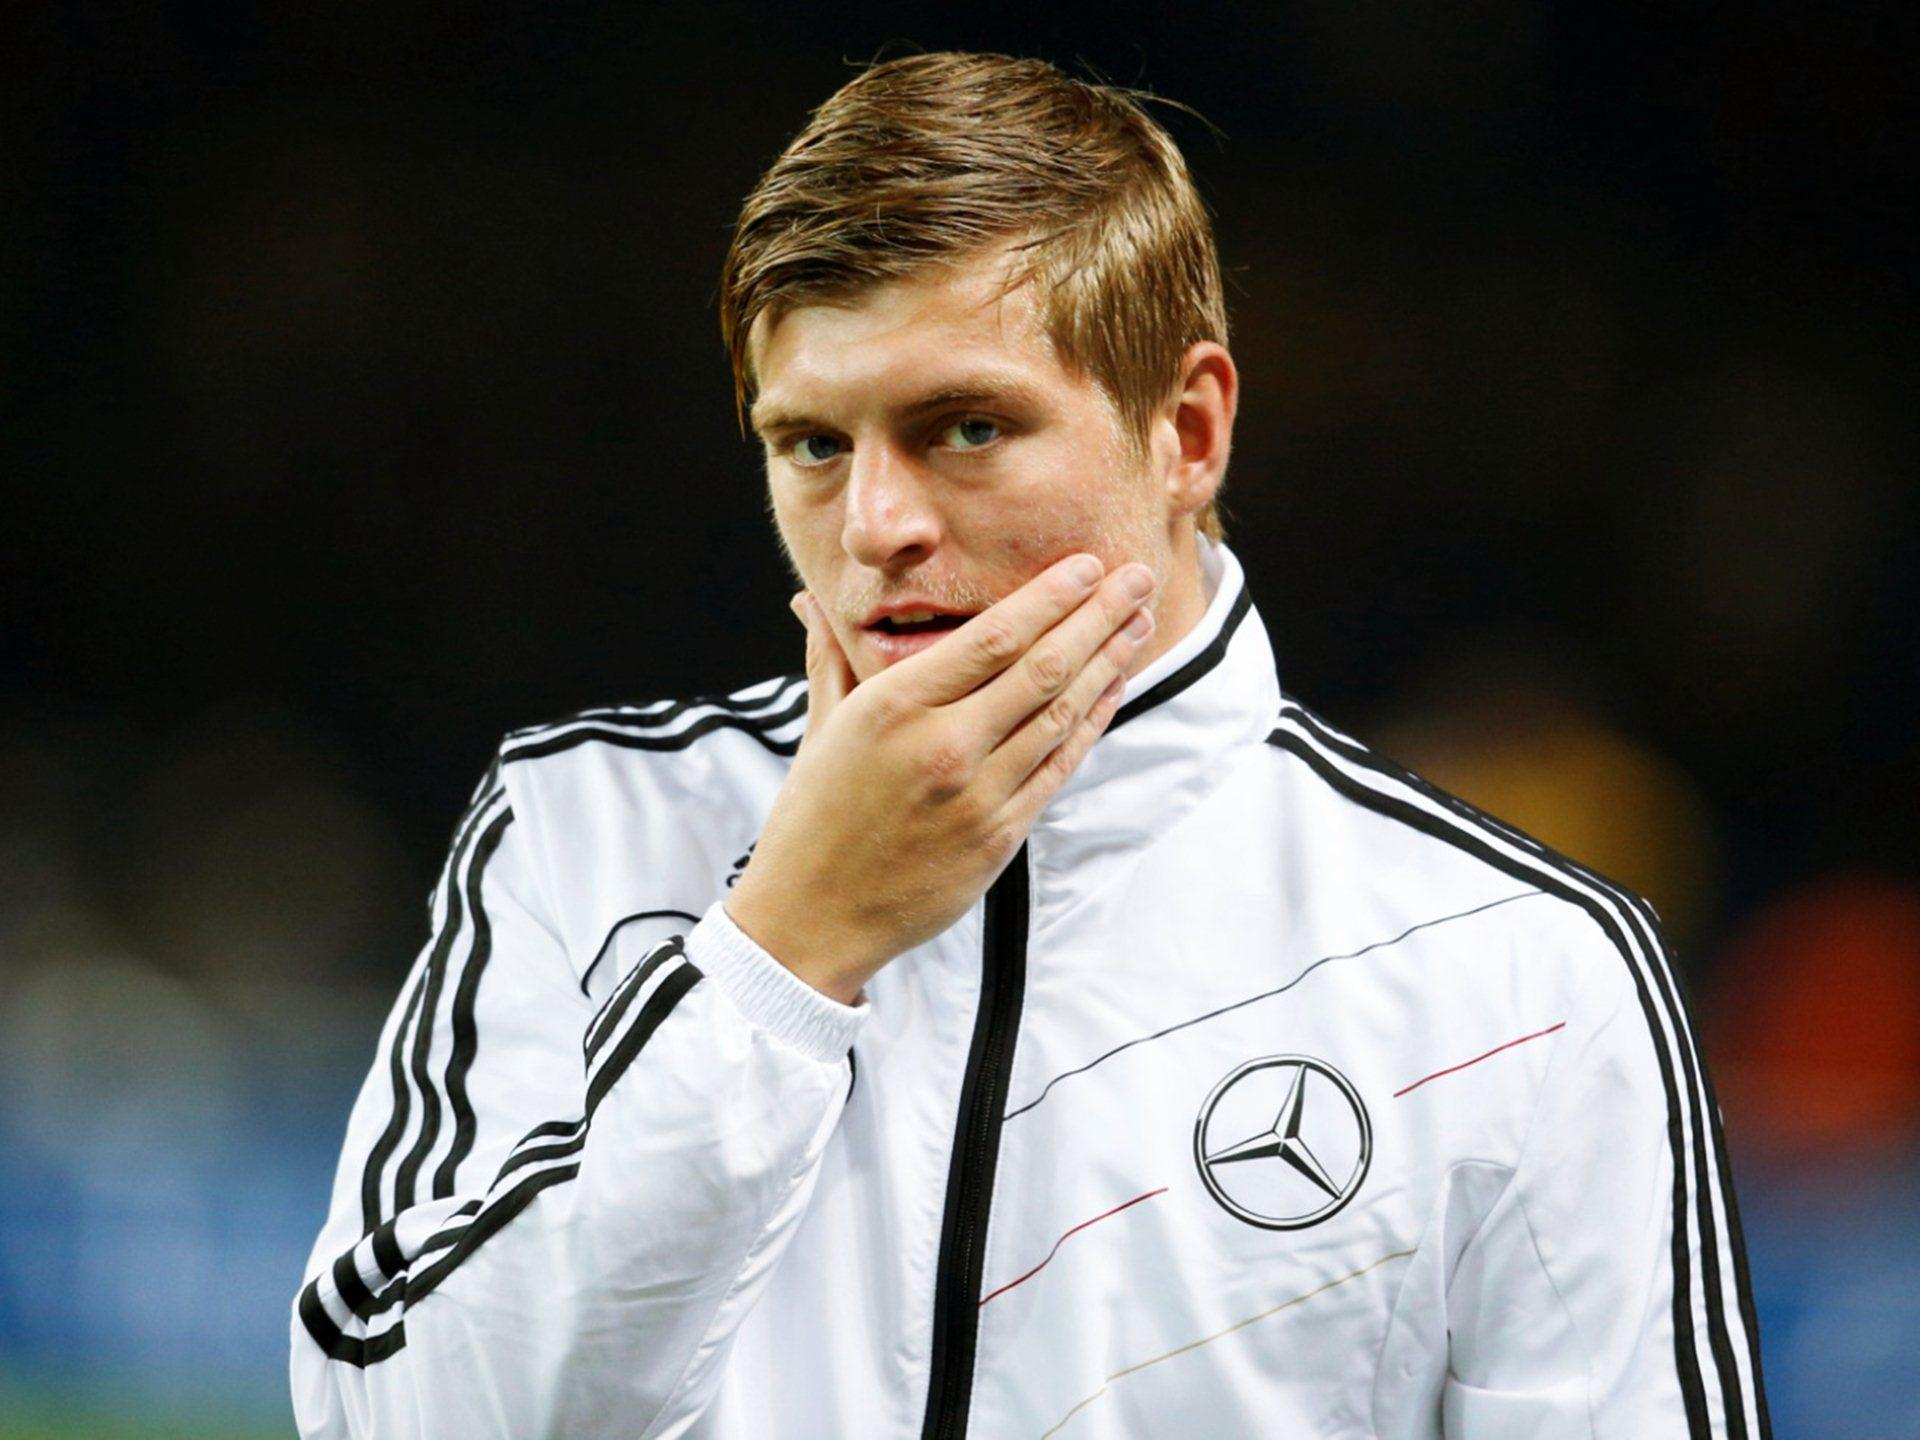 download toni kroos football soccer player free mobile checking face hd background desktop pictures